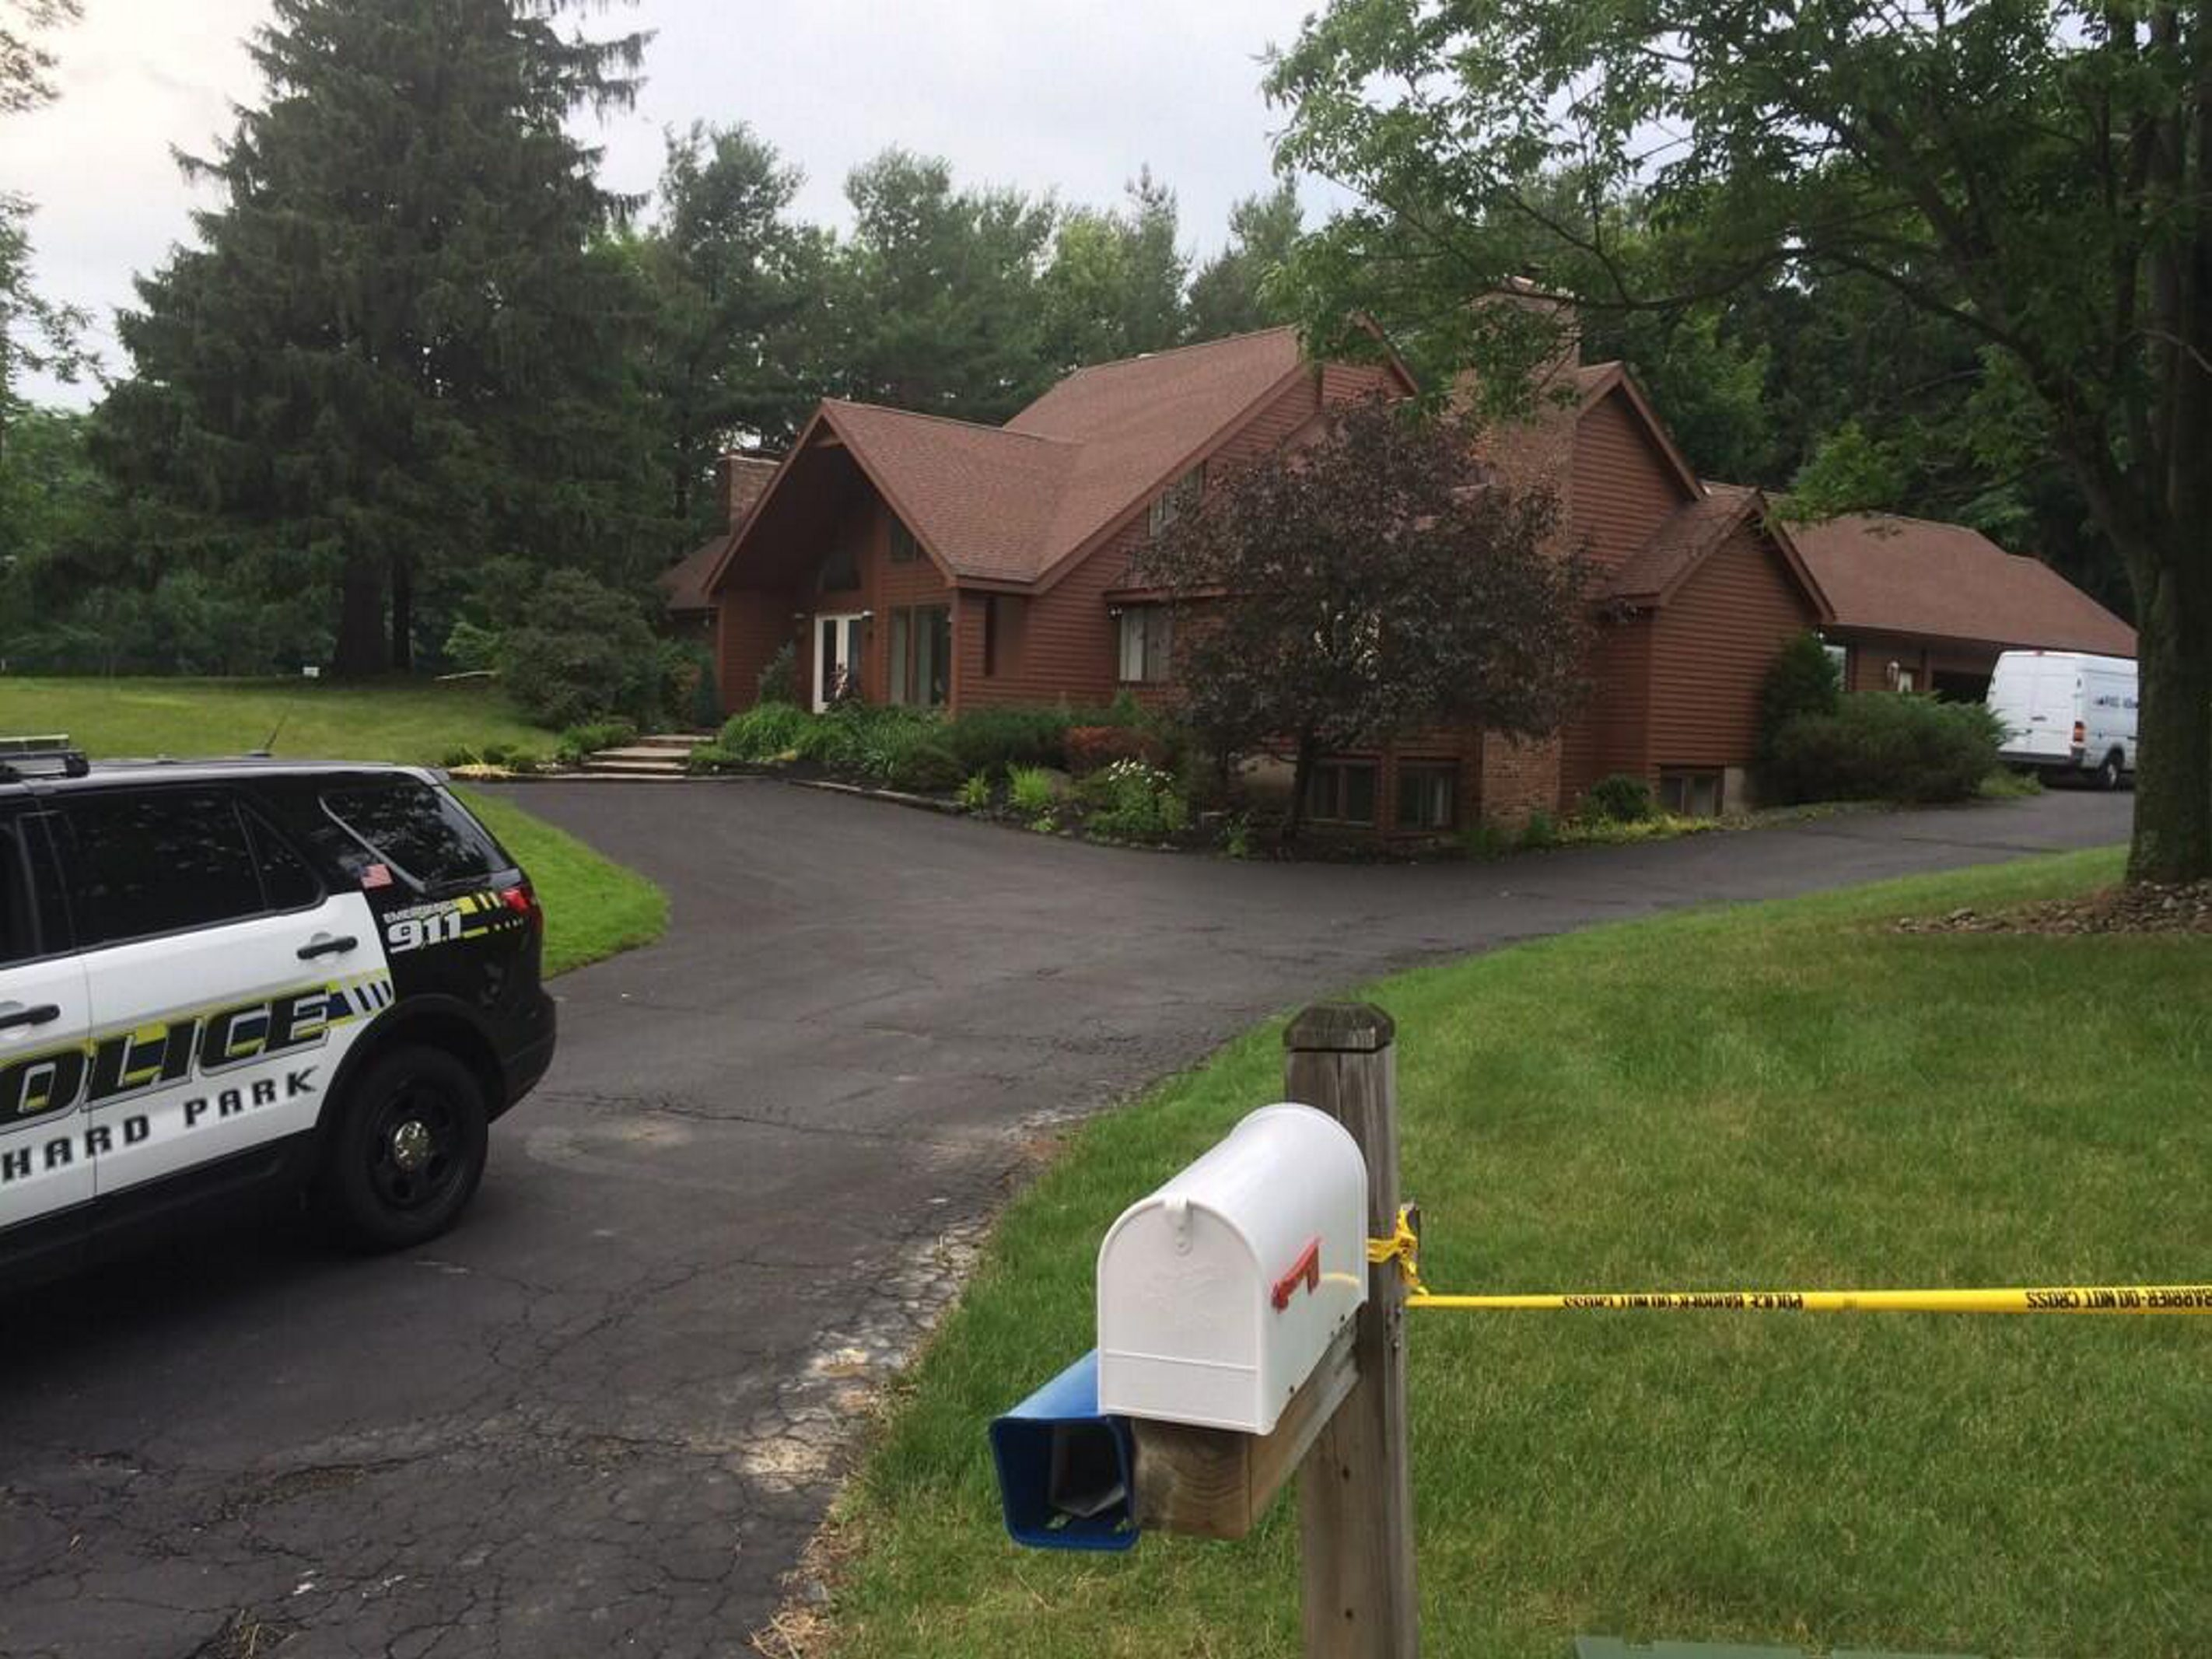 Police at the scene at 2 Hillsboro Drive, Orchard Park, Monday night.